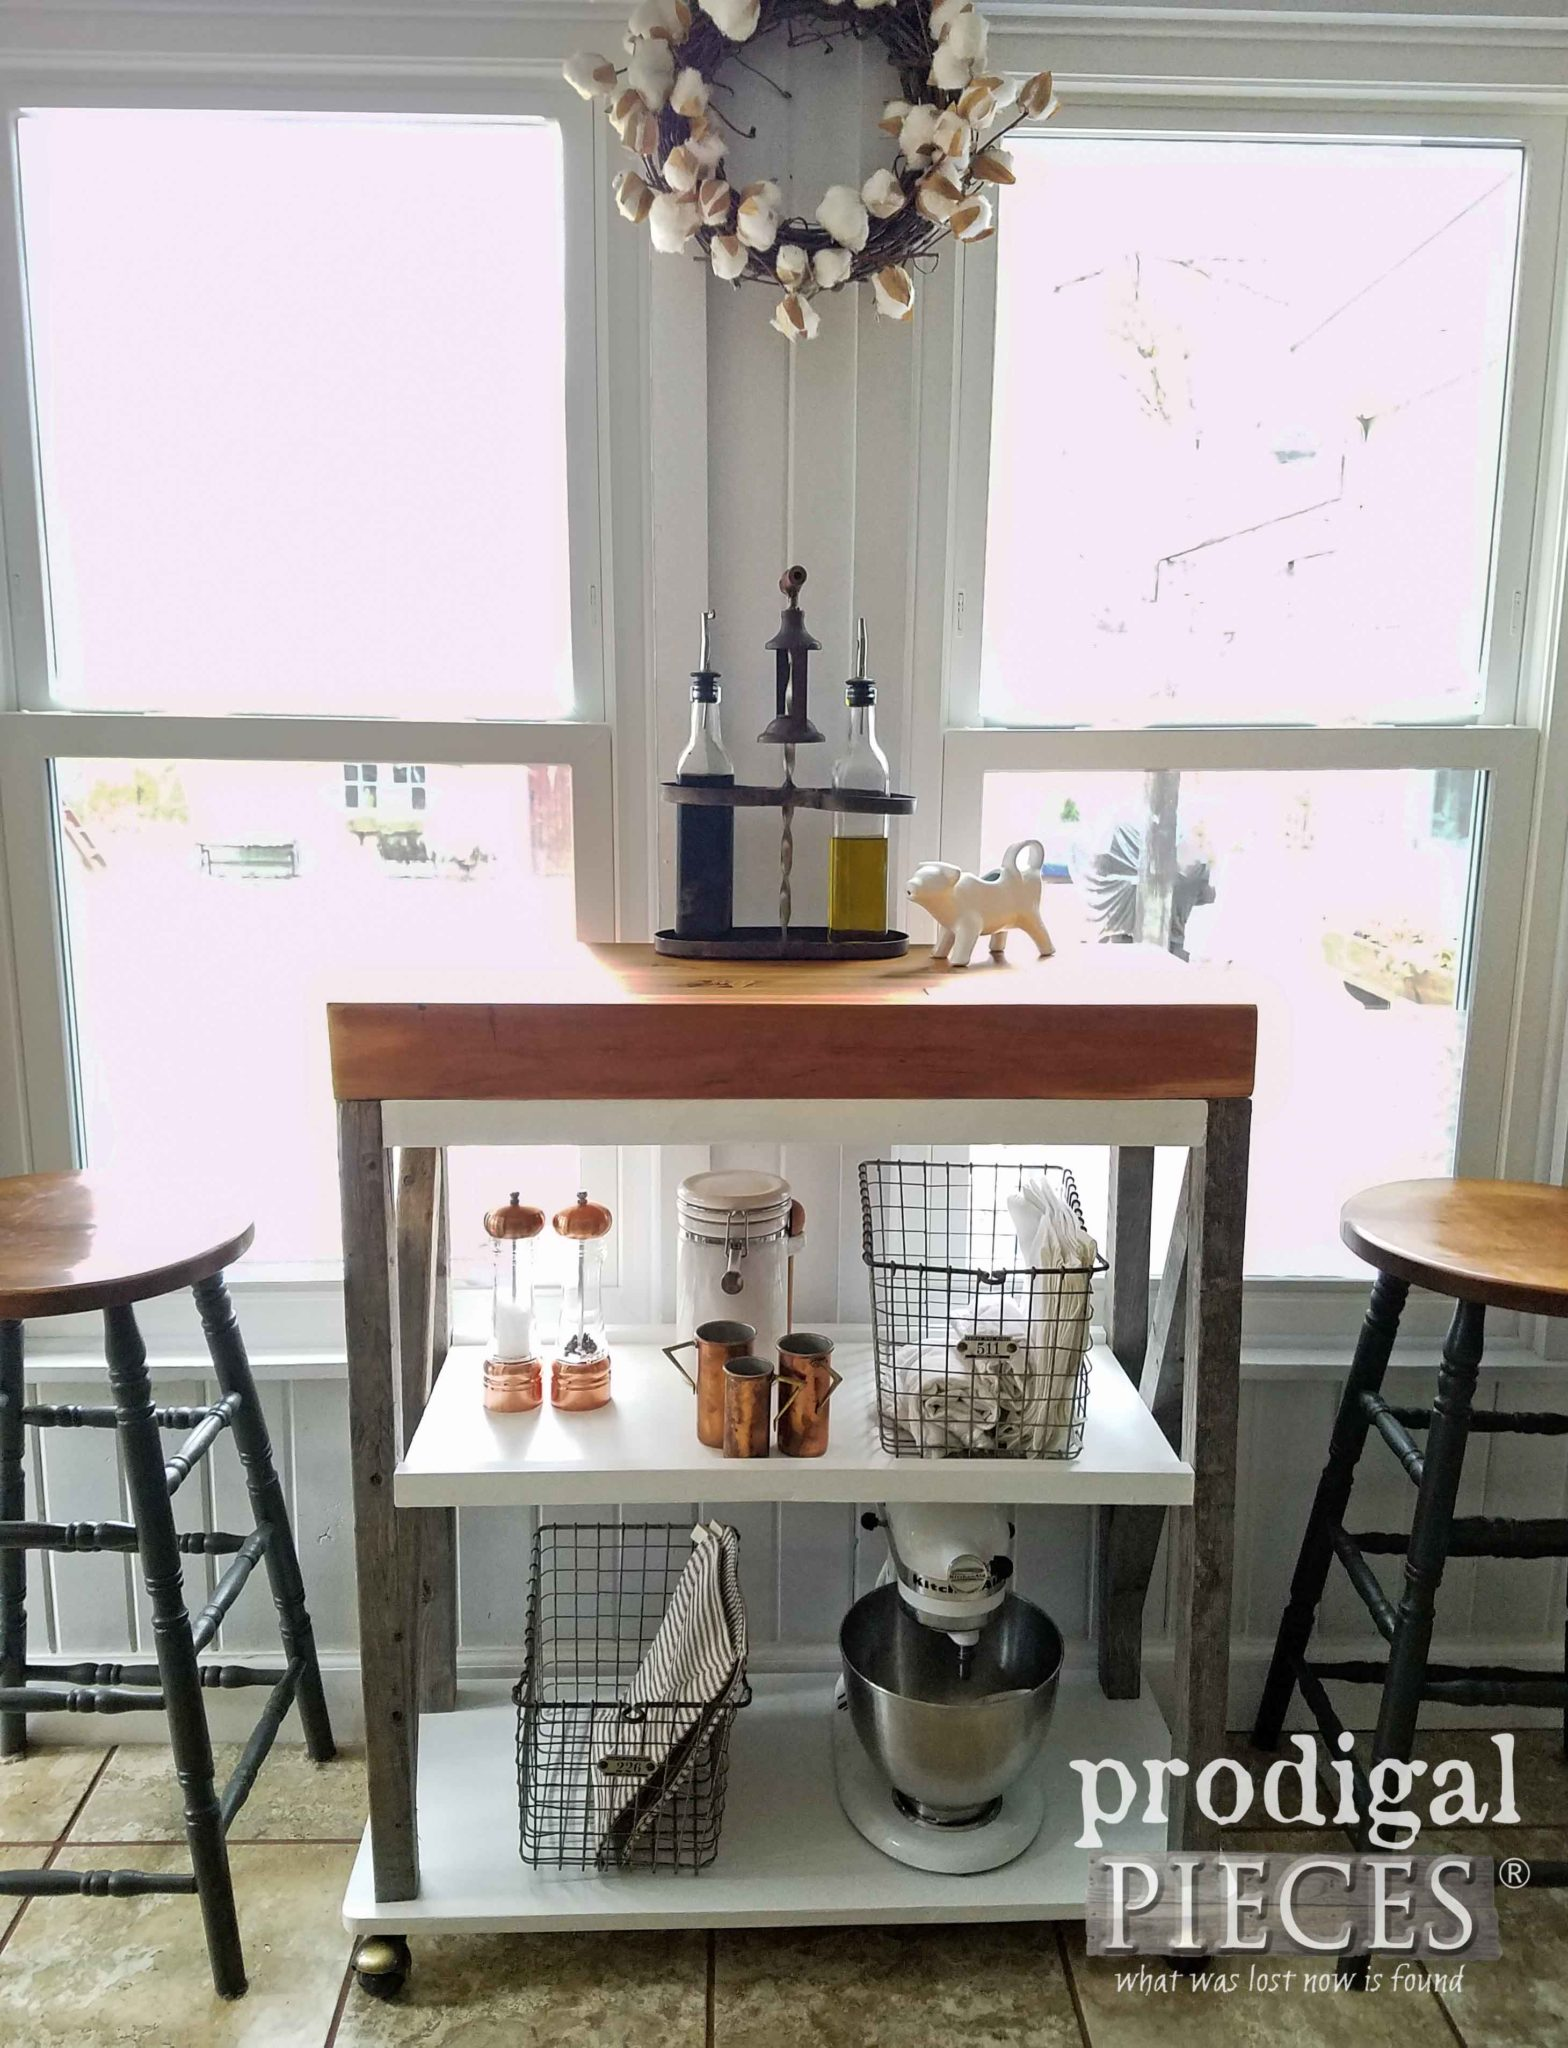 Farmhouse Style Butcher Block Storage Cart made by Larissa of Prodigal Pieces. Available at prodigalpieces.com